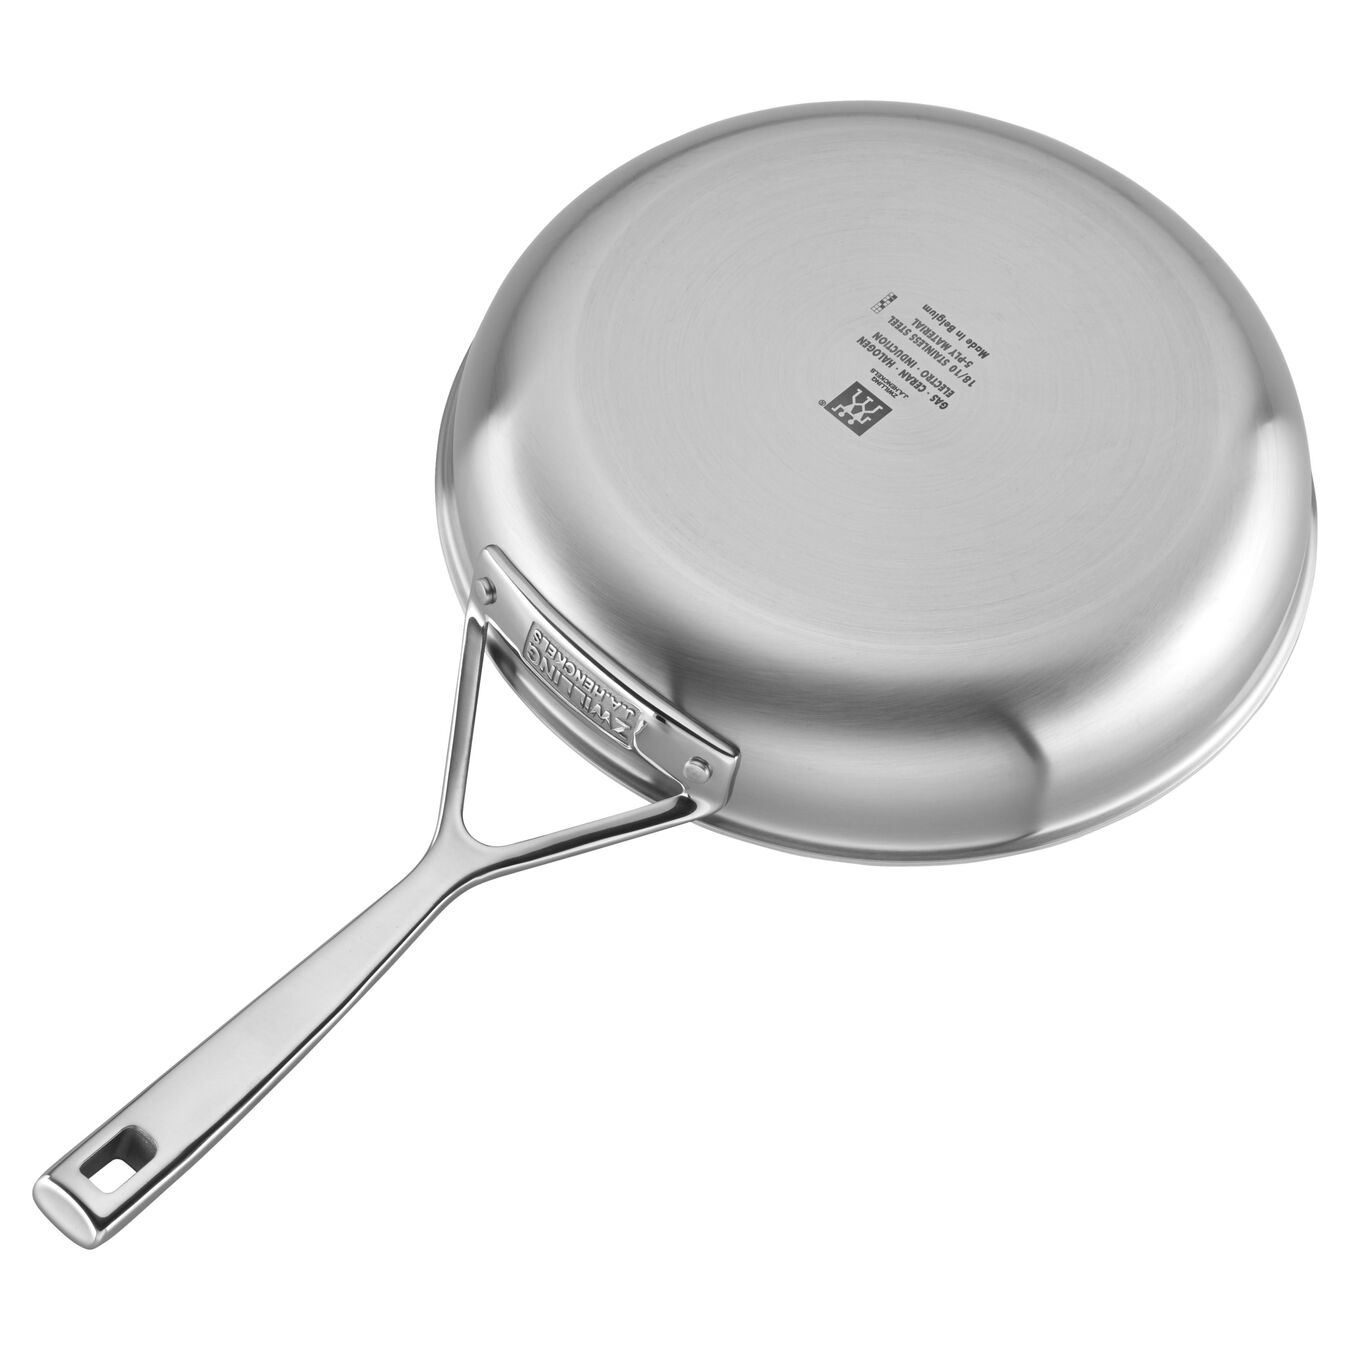 5 Ply, 18/10 Stainless Steel, 9.5-inch, Frying pan,,large 3